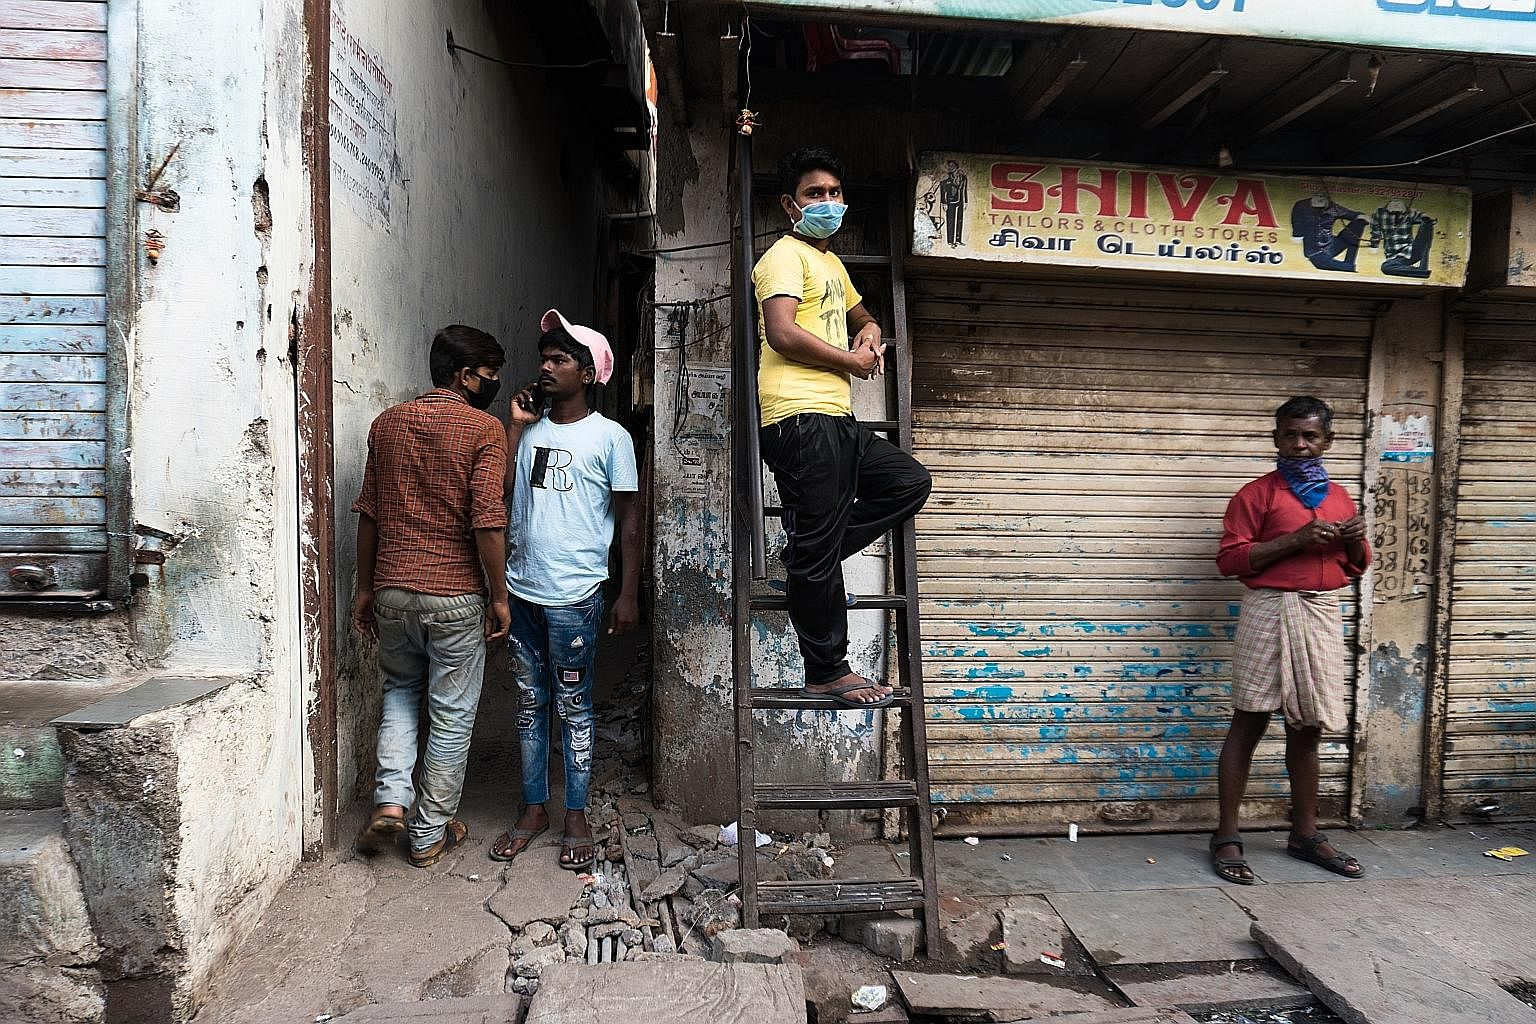 The majority of houses in Dharavi are smaller than 150 sq ft and are home to six occupants on average. Social di